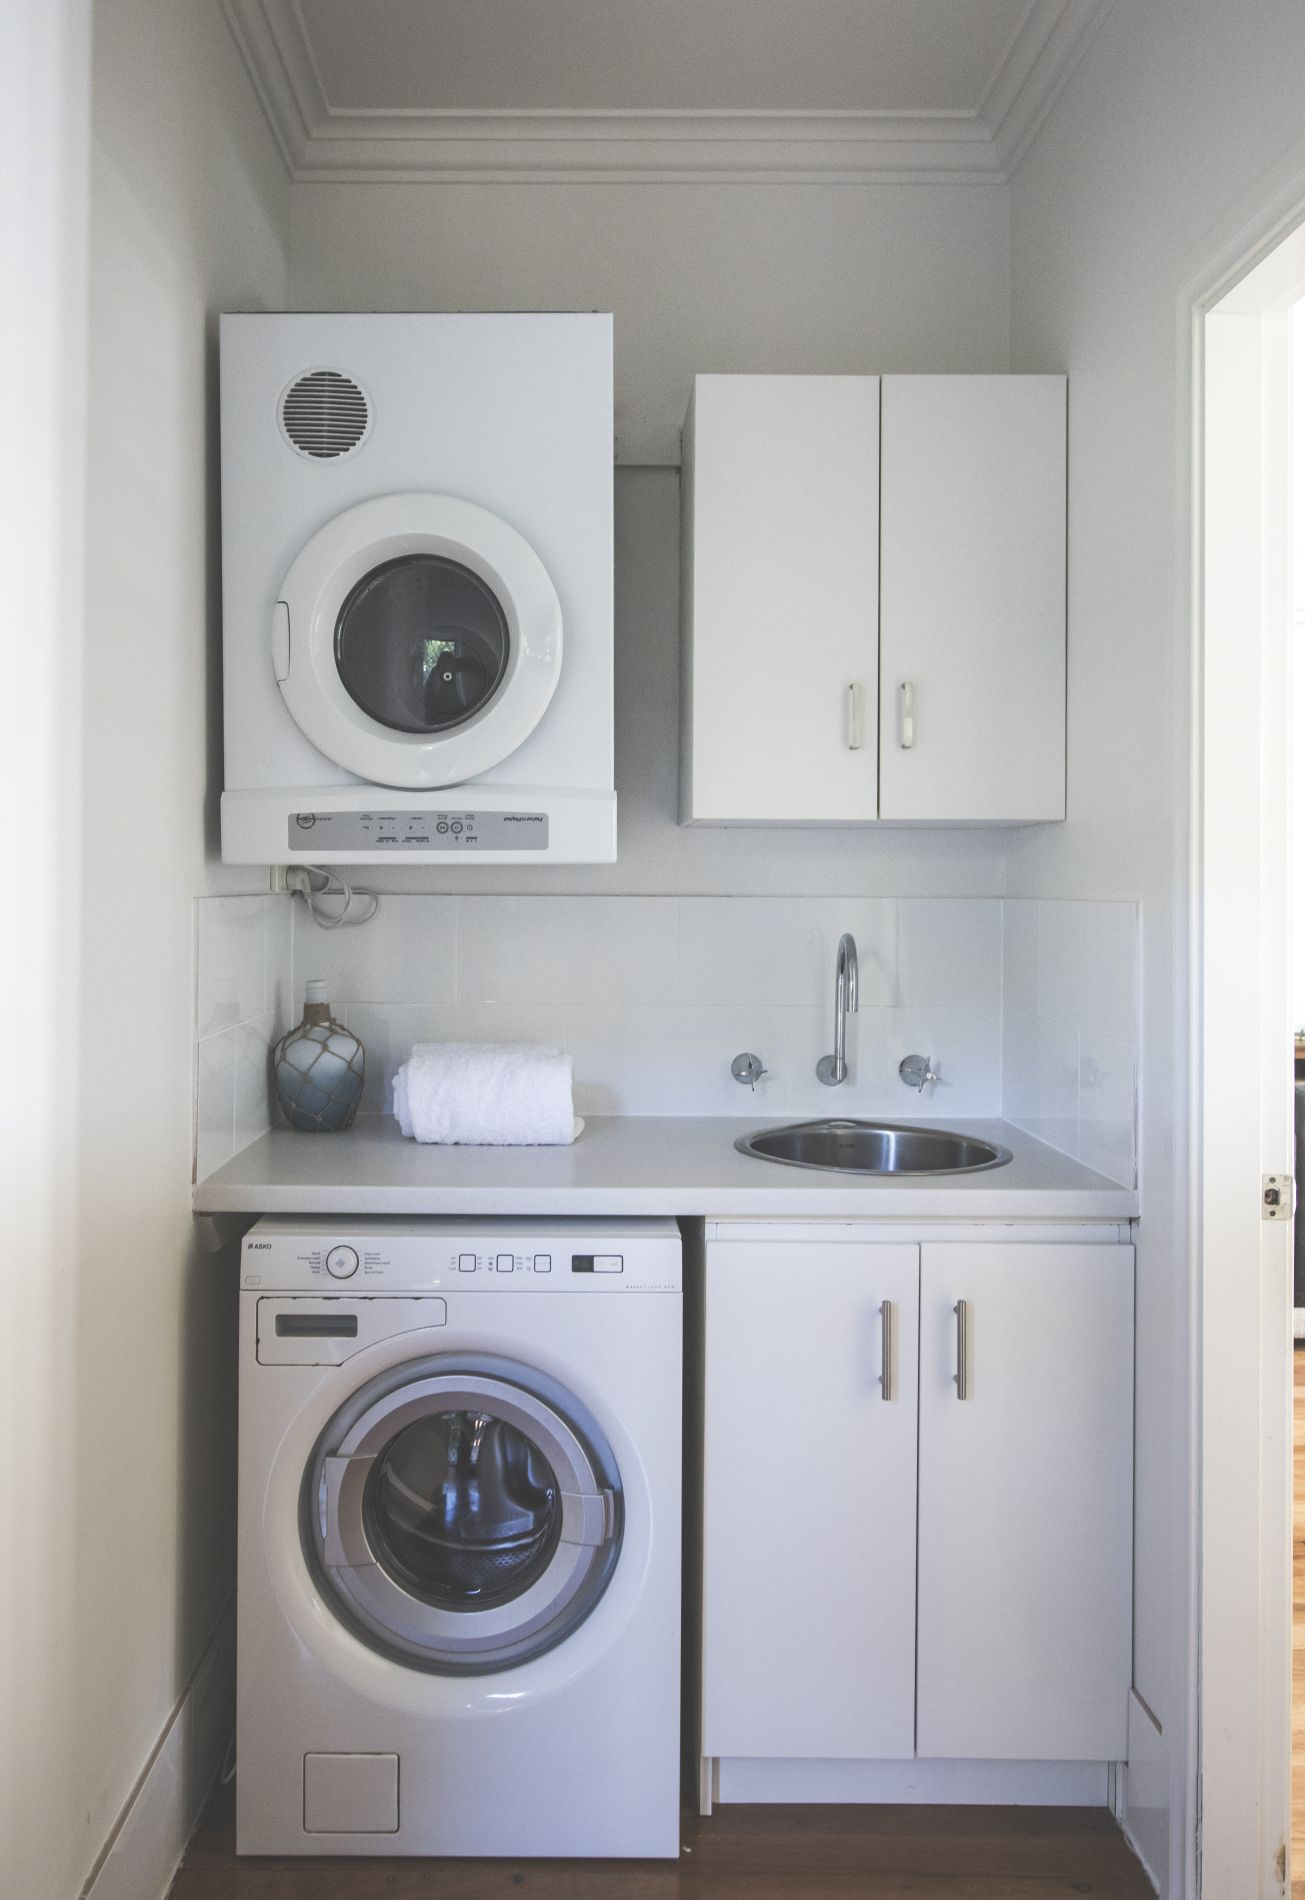 New washer and dryer in modern tidy laundry nook